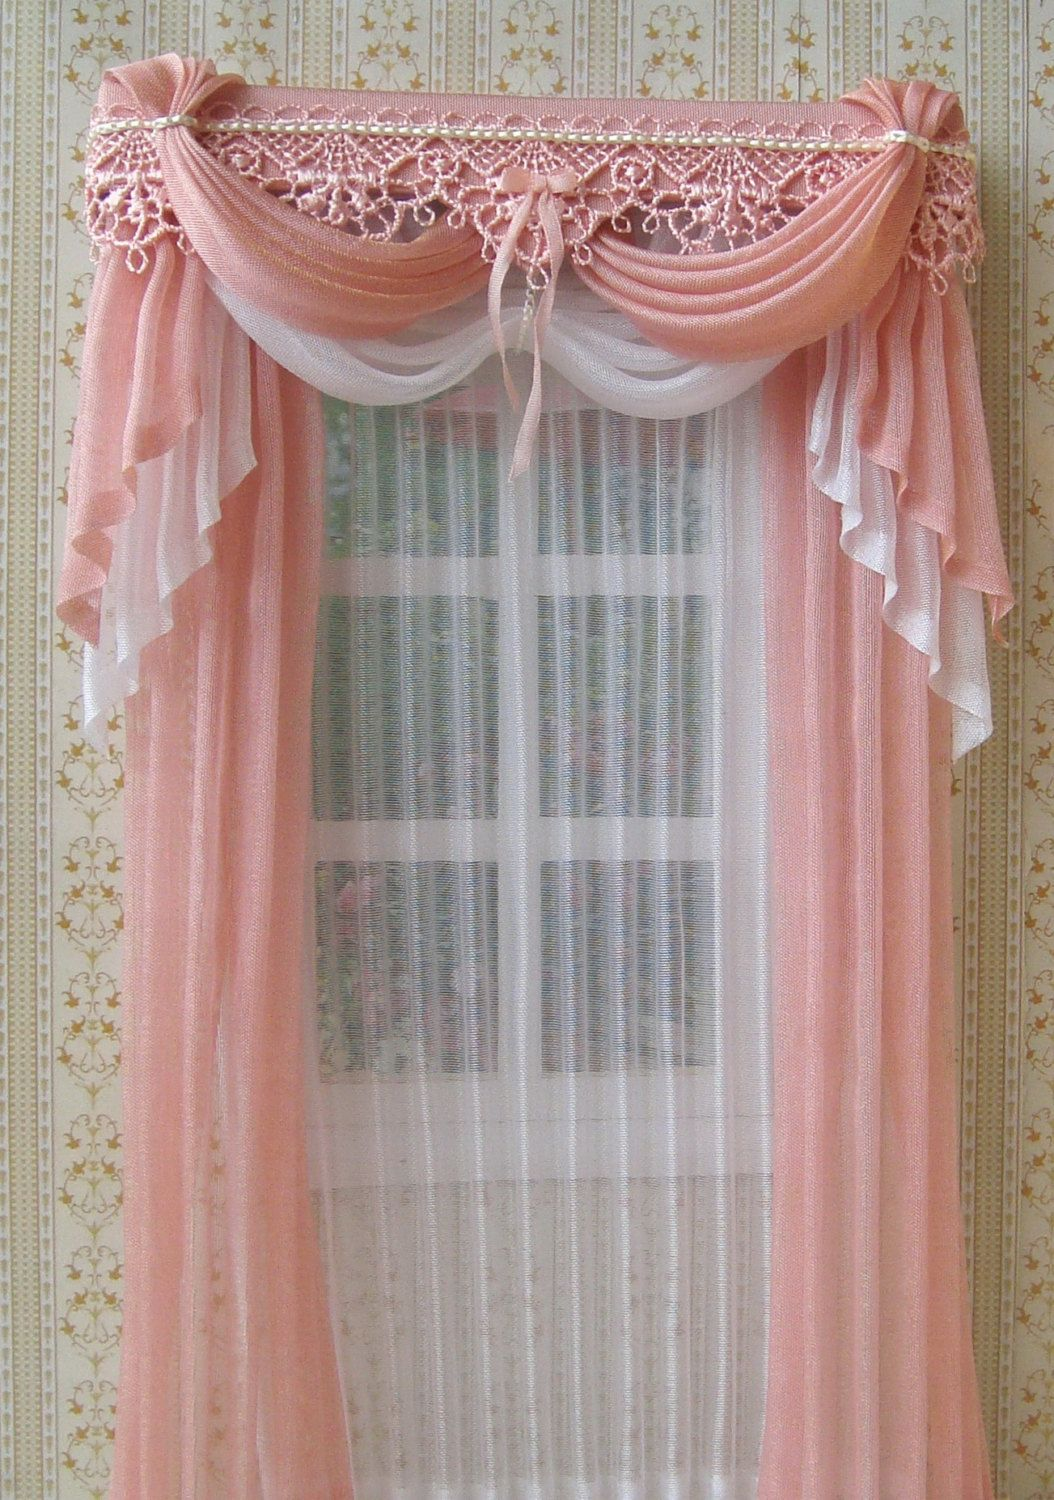 Miniature 1:12 Dollhouse curtains to order | Cortinas, Miniatura y ...